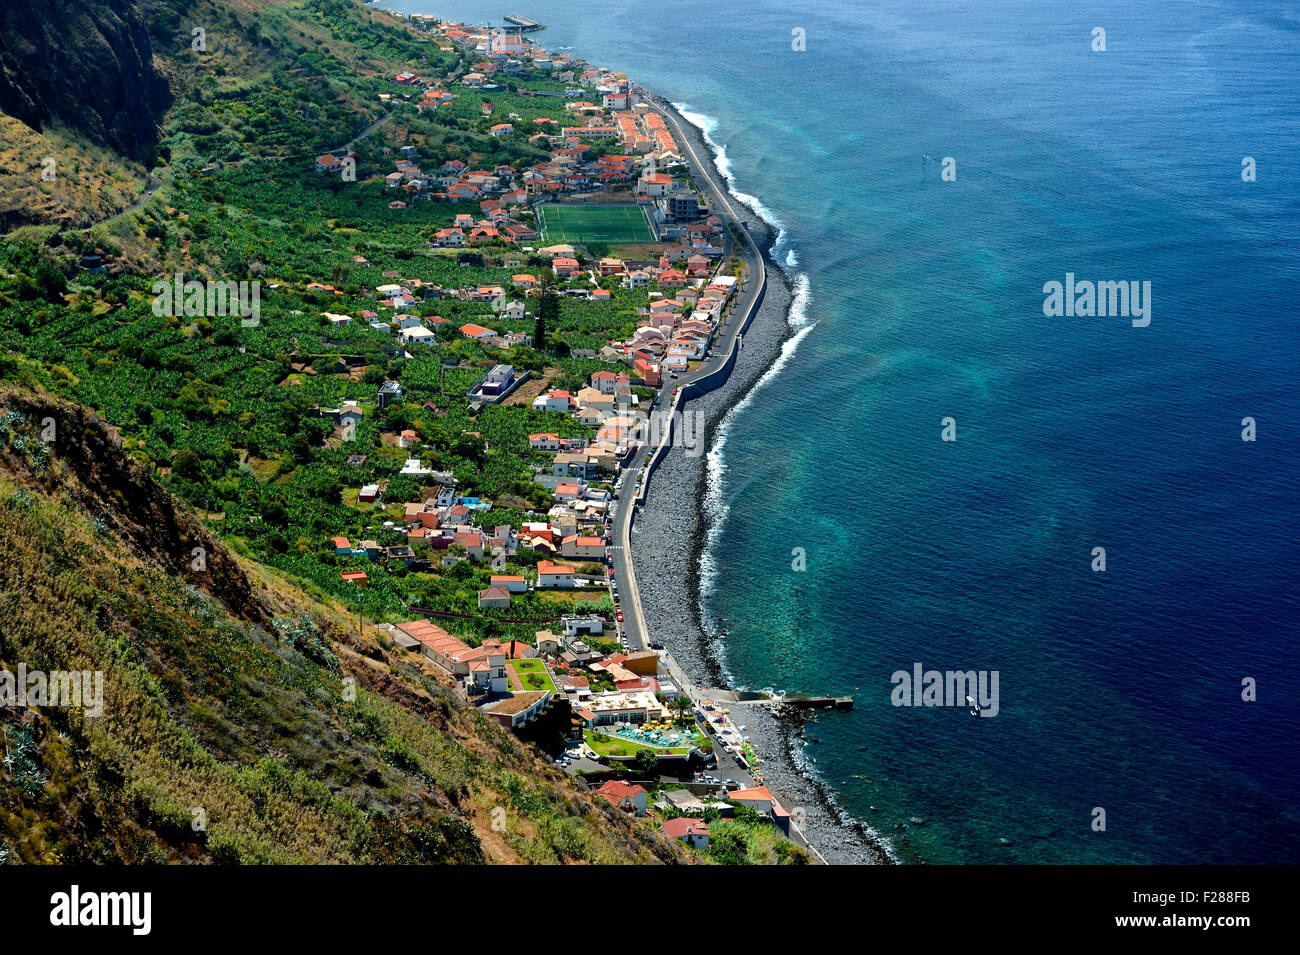 View of Paul do Mar, West Coast, Madeira, Portugal - Stock Image